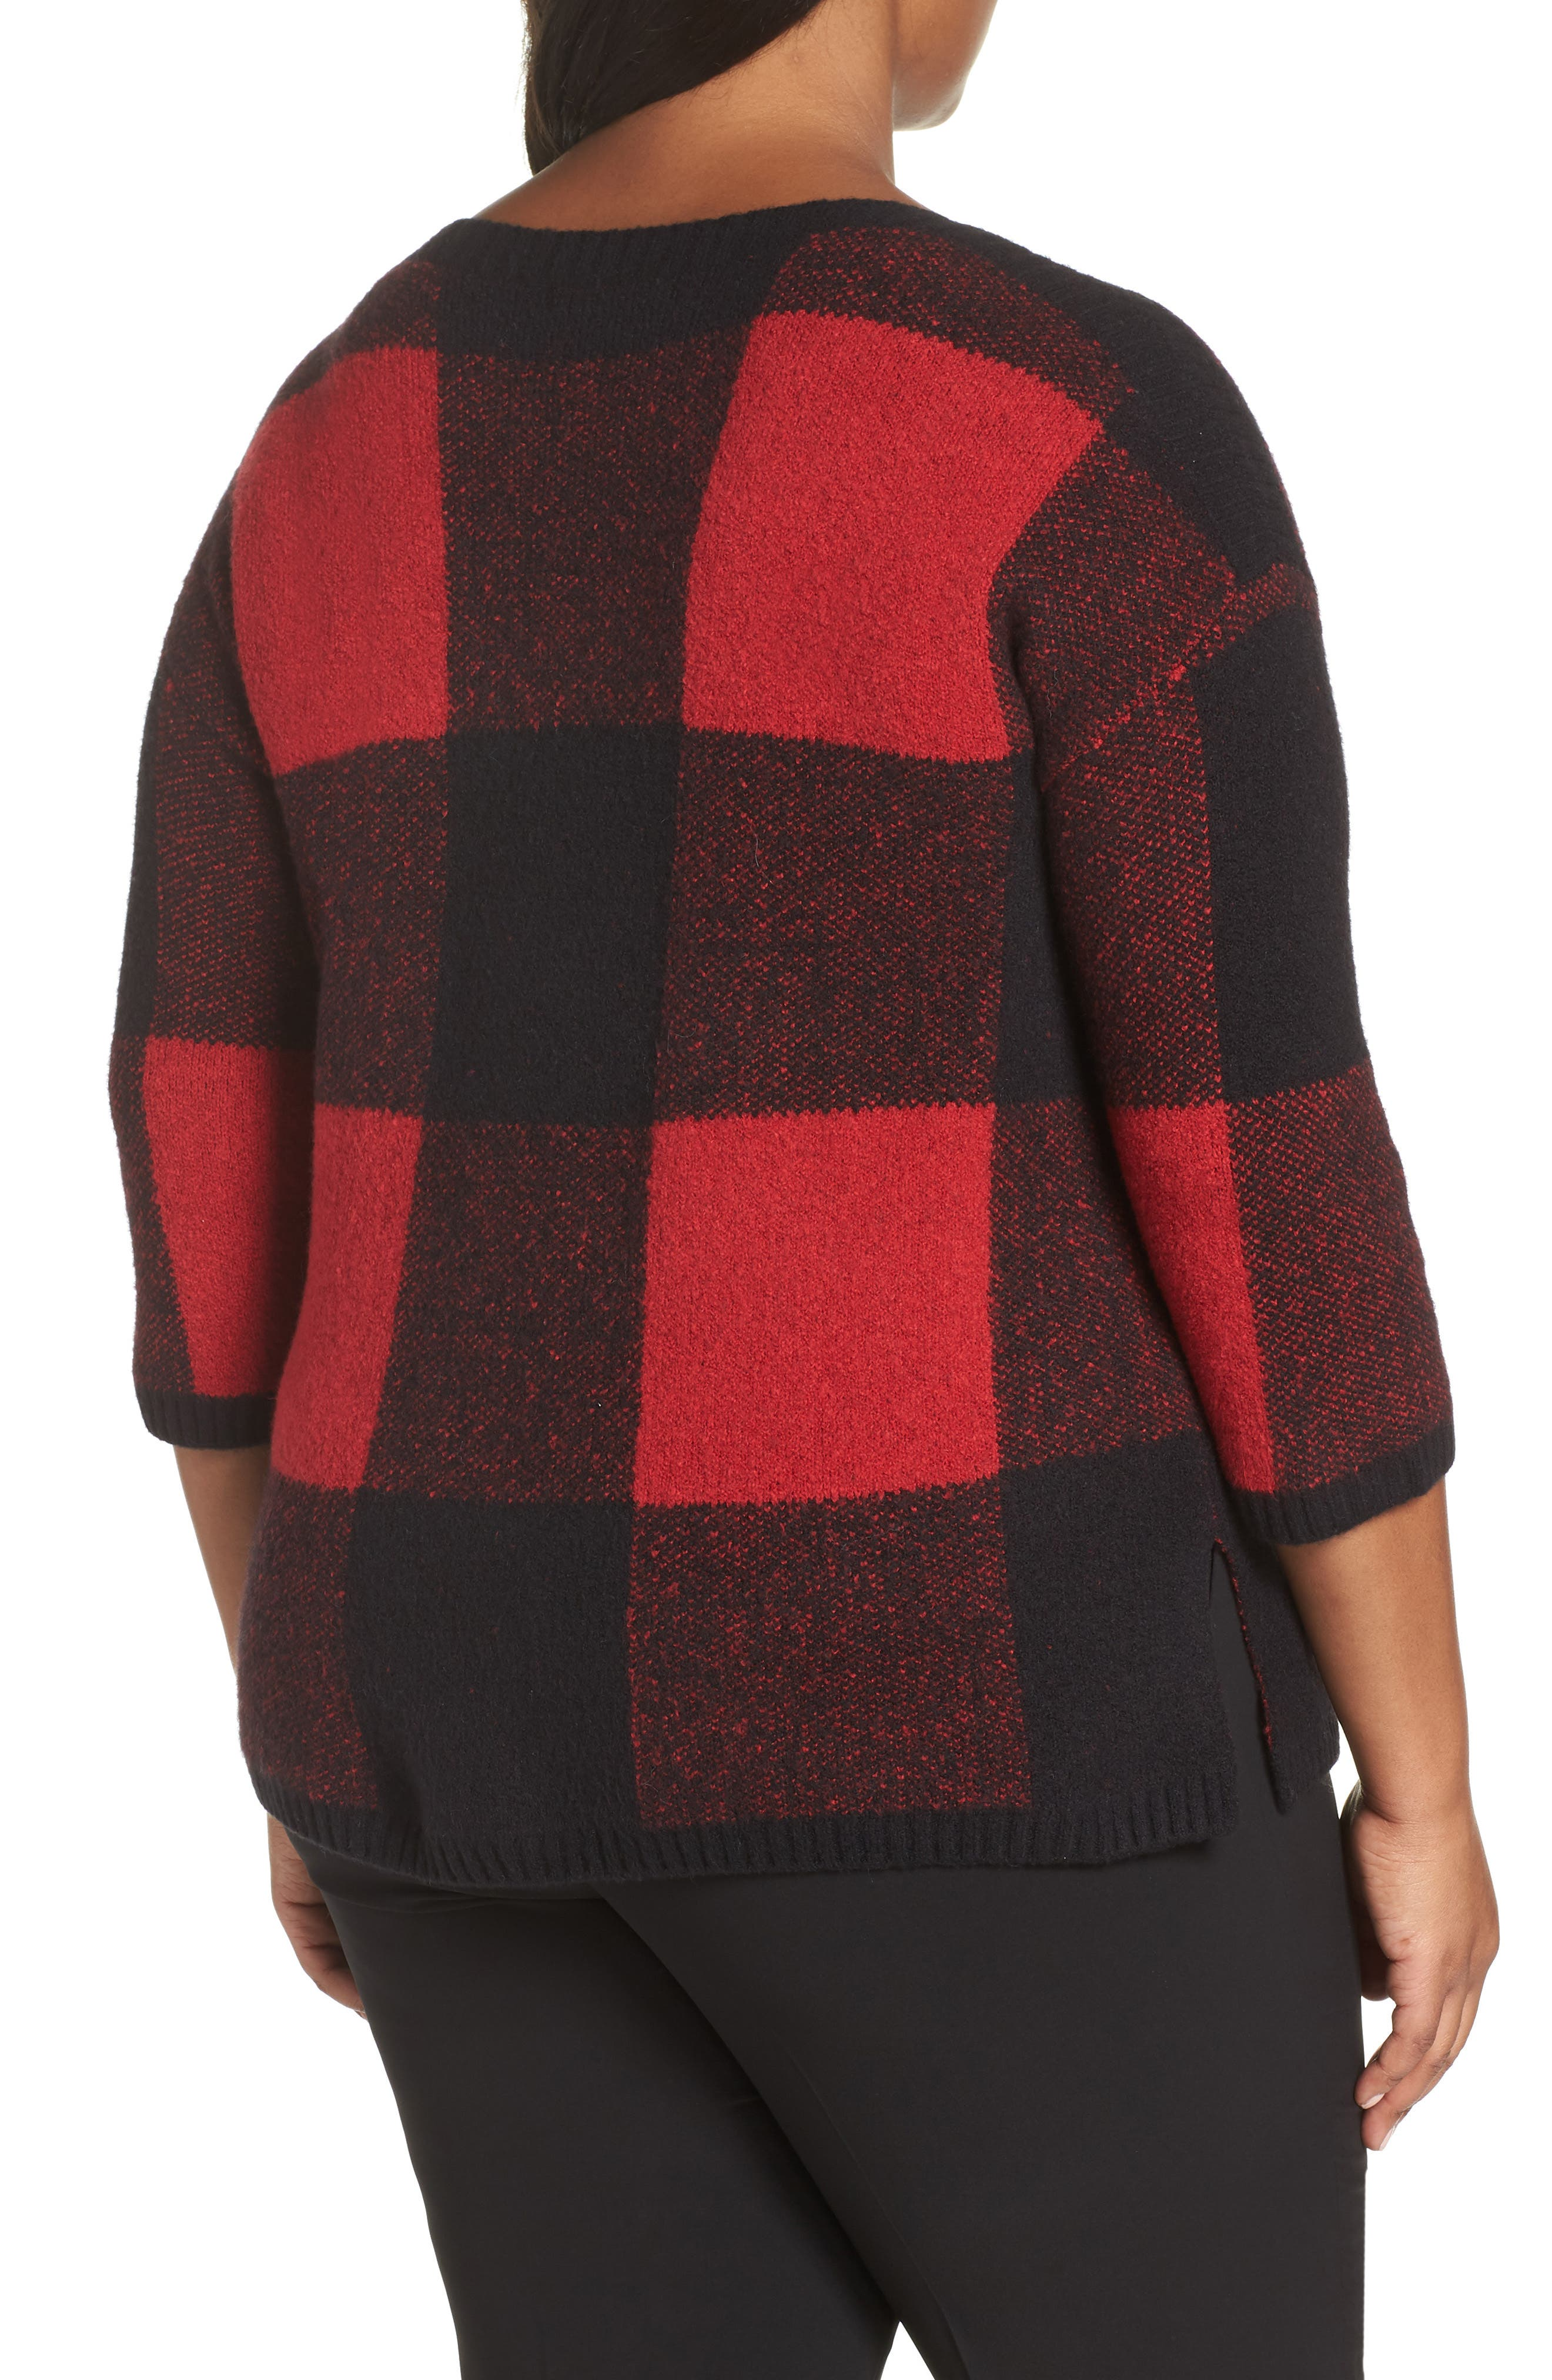 SEJOUR, Buffalo Plaid Sweater, Alternate thumbnail 2, color, BLACK-RED BUFFALO CHECK